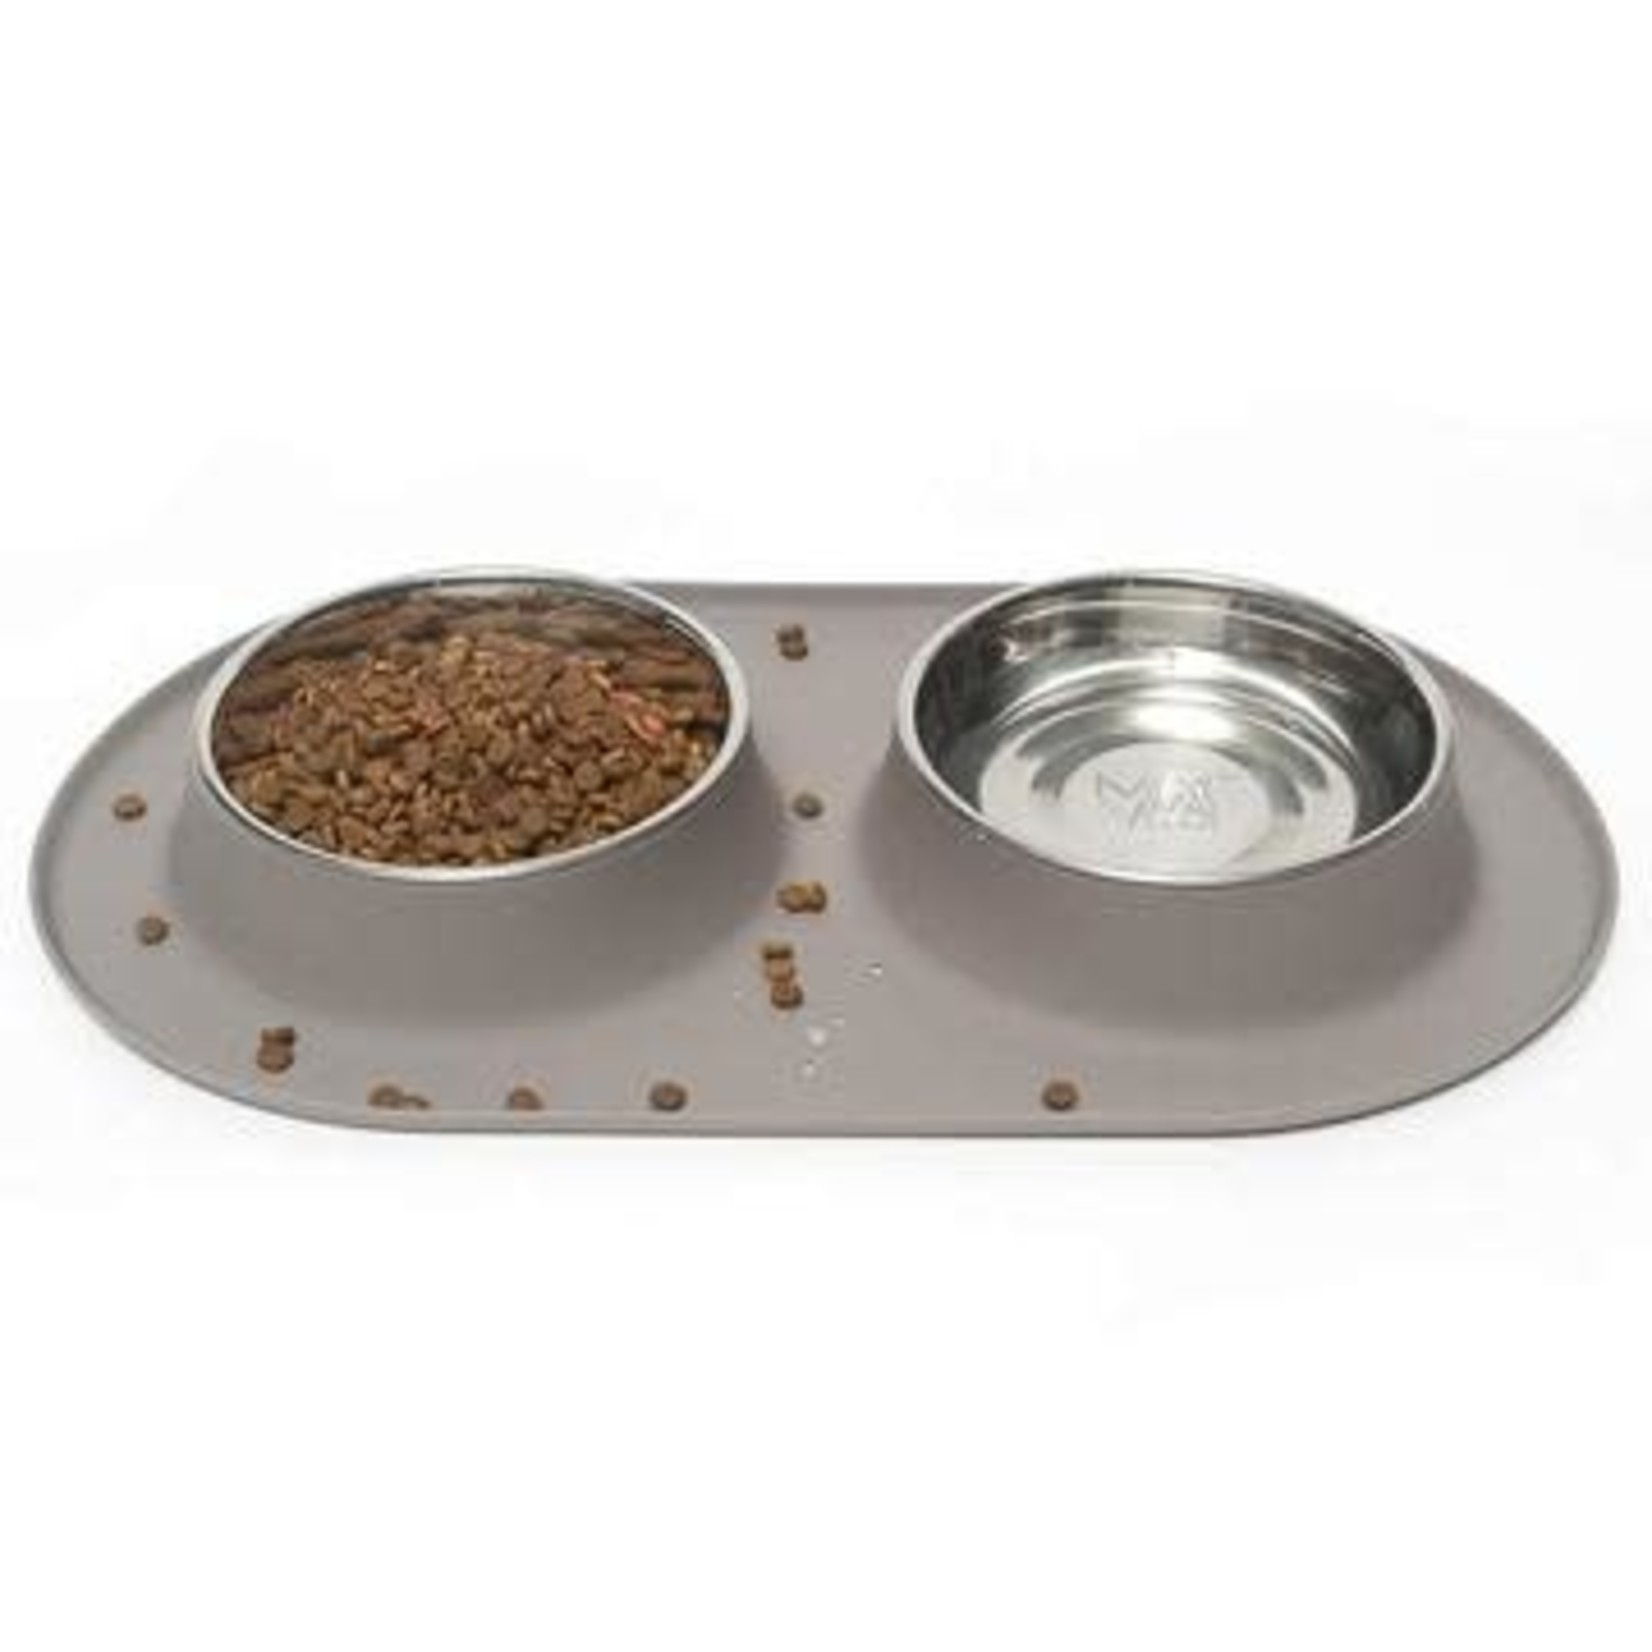 Messy Mutts Messy Mutts Dog Double Silicone Feeder Grey 3 CUP